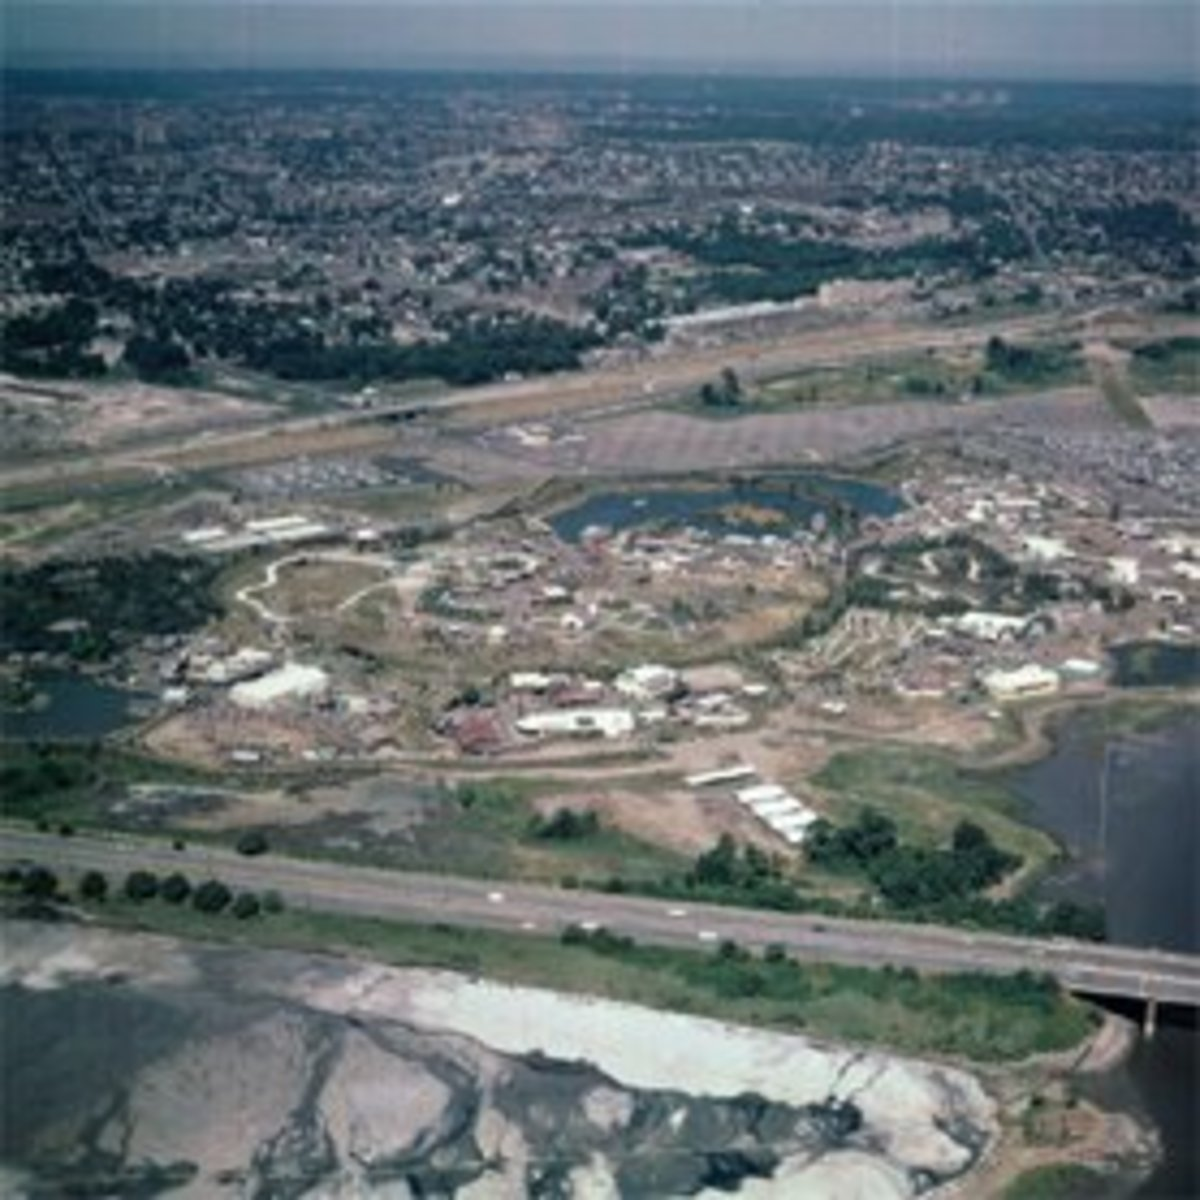 In comparison, a birdseye view of Freedomland U.S.A.